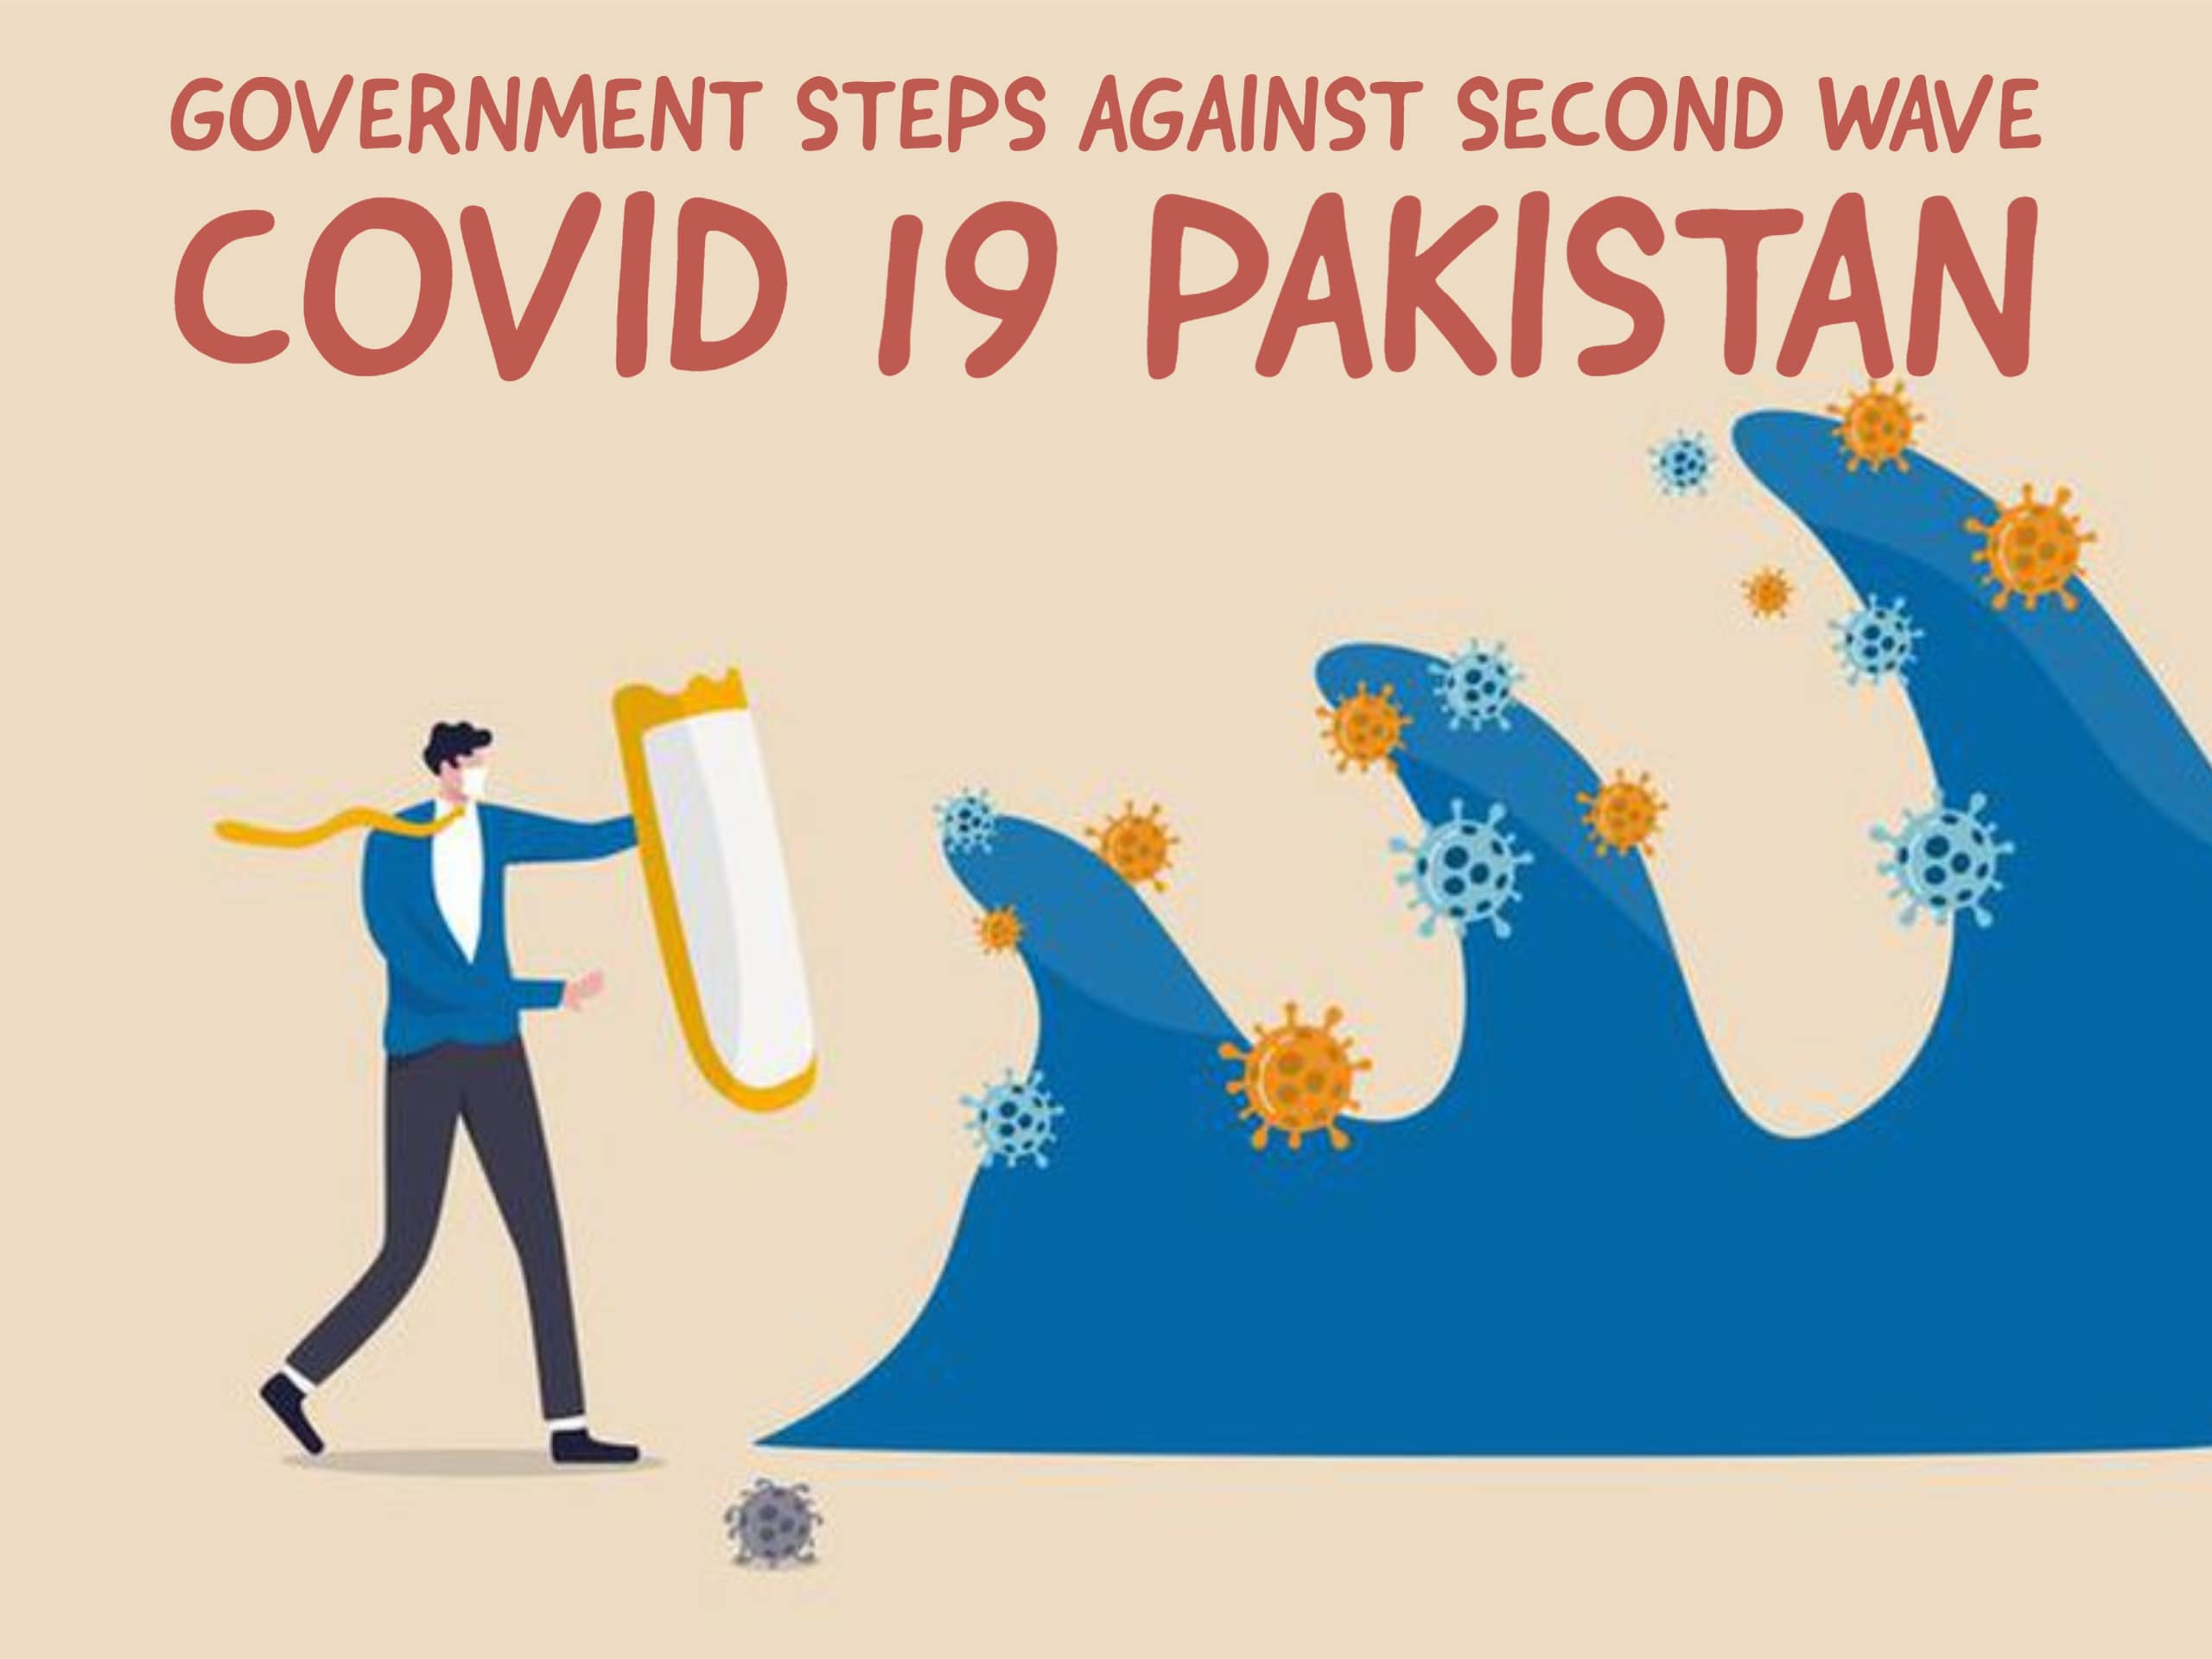 Government Steps Against Second Wave Covid 19 Pakistan